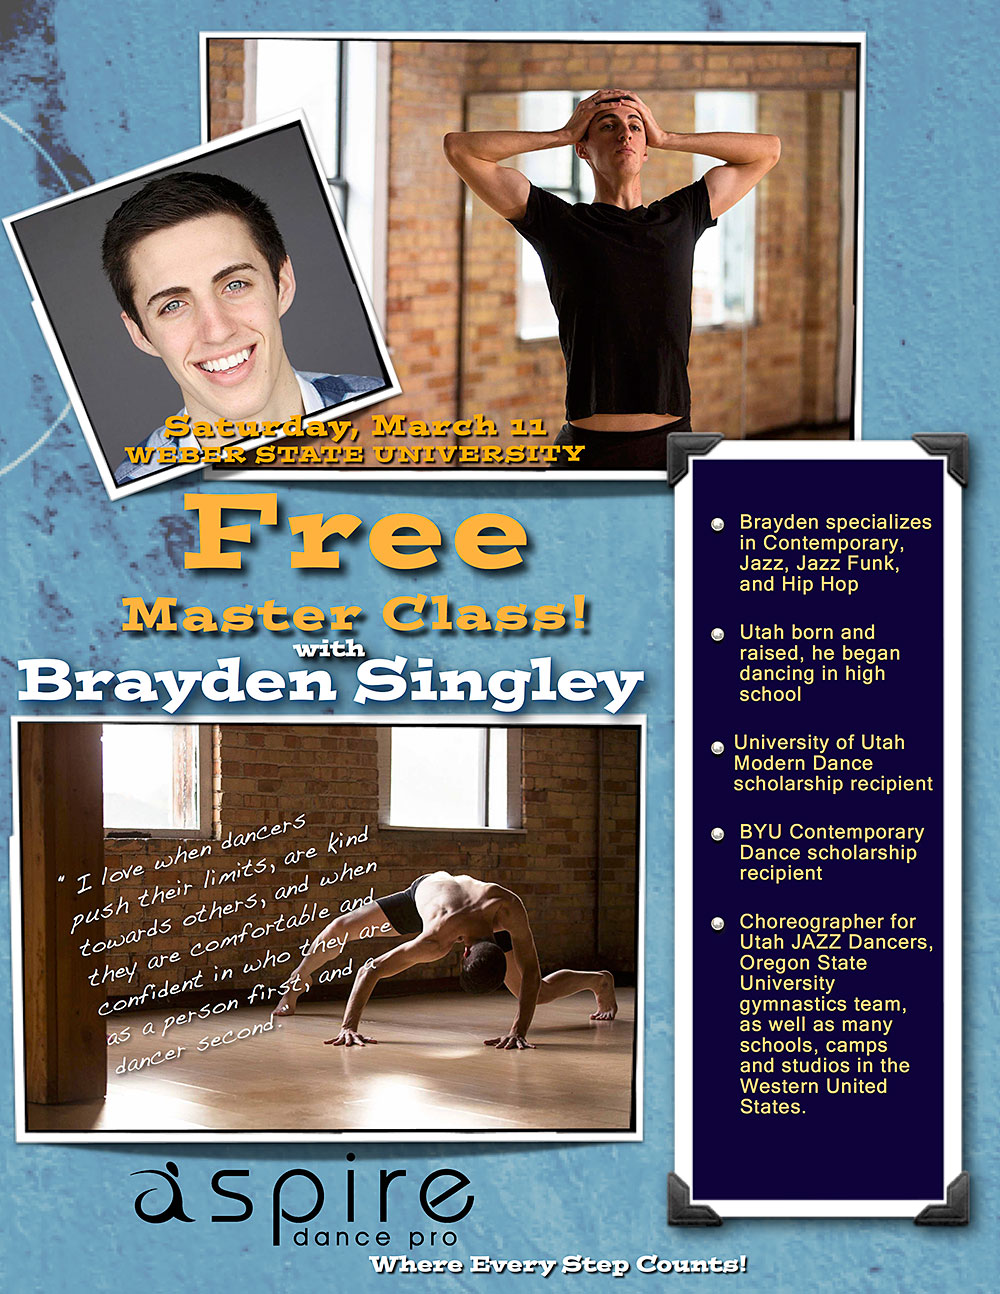 Brayden Singley - Aspire Dance Pro Competitions Masterclass Instructor